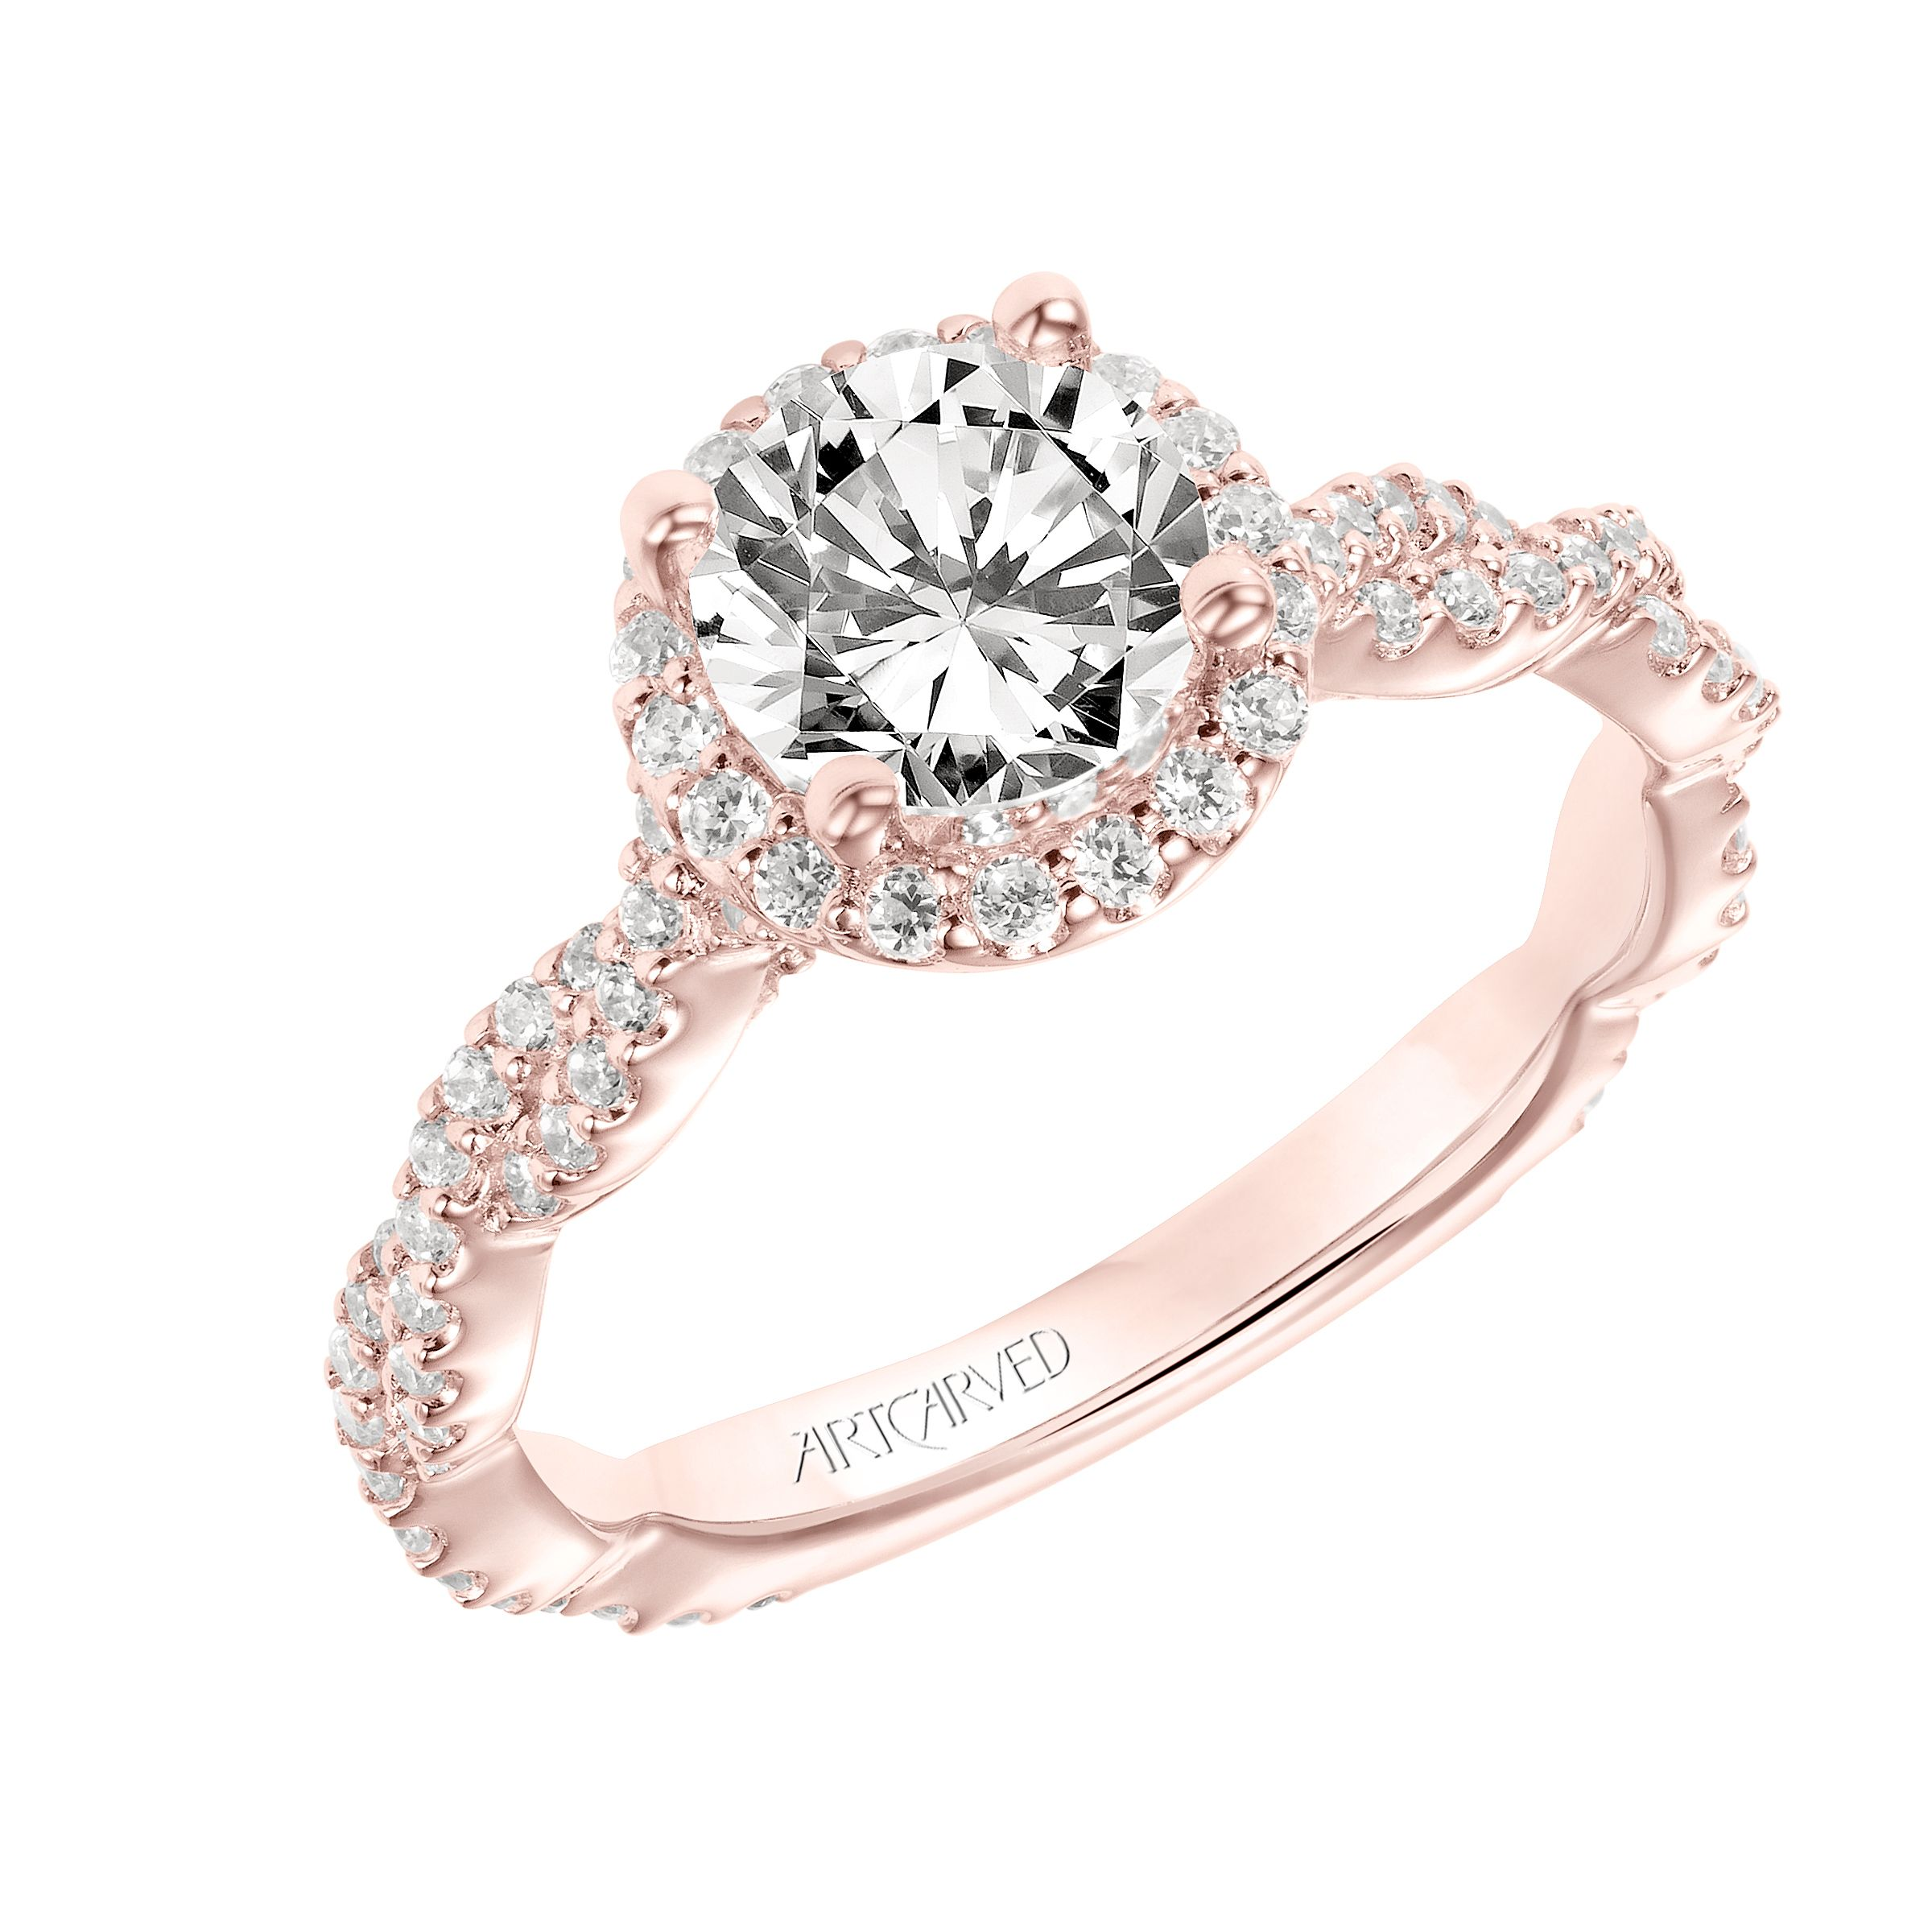 New for our Spring collection Gianna Contemporary Diamond Halo